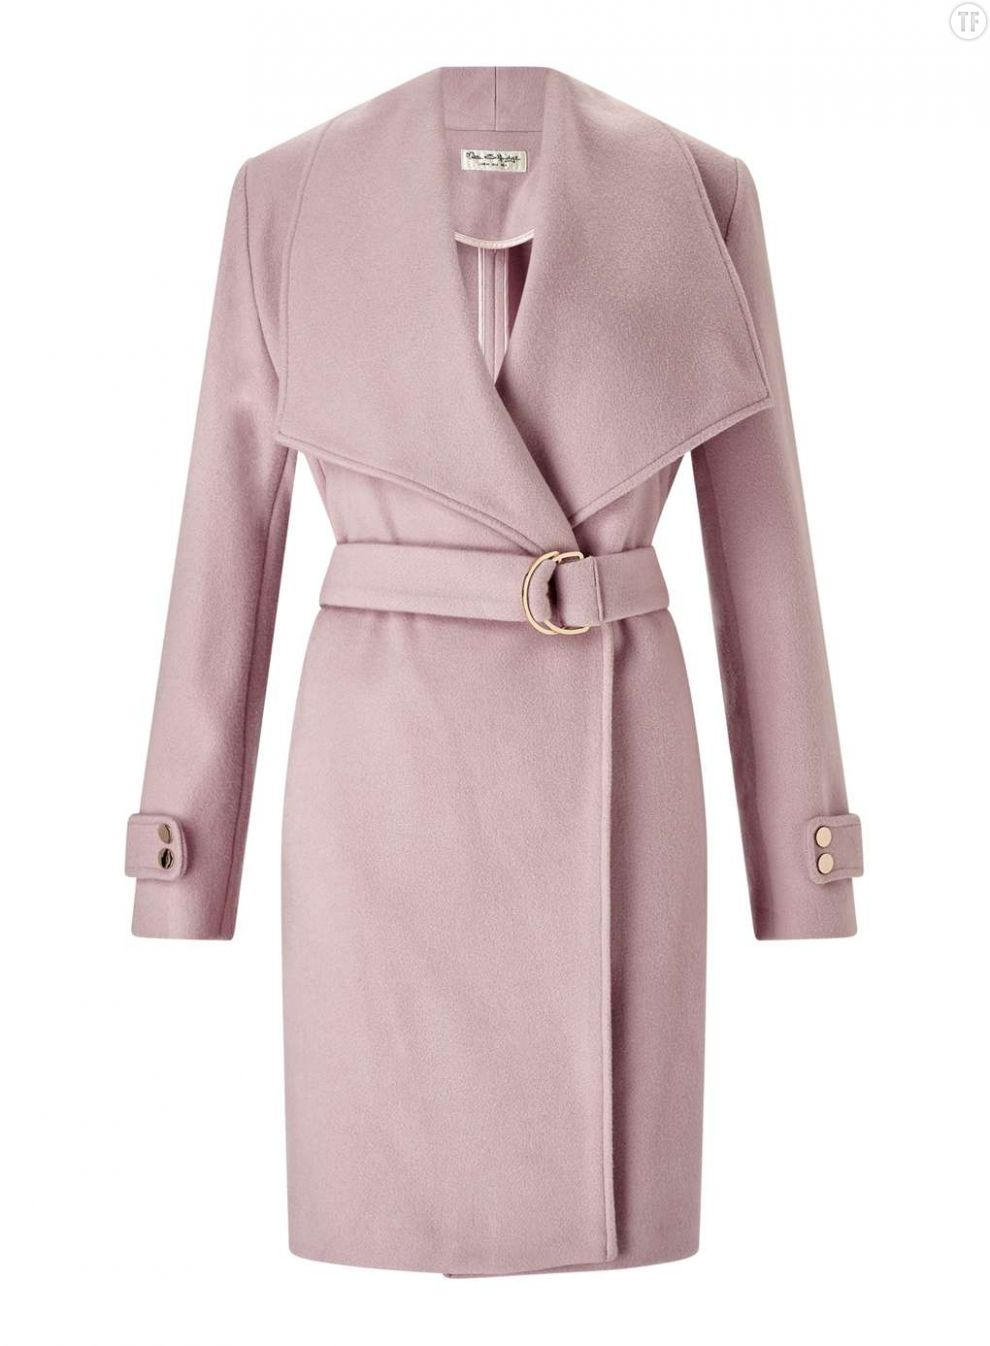 Manteau rose pastel ceinturé Miss Selfridge, 79€